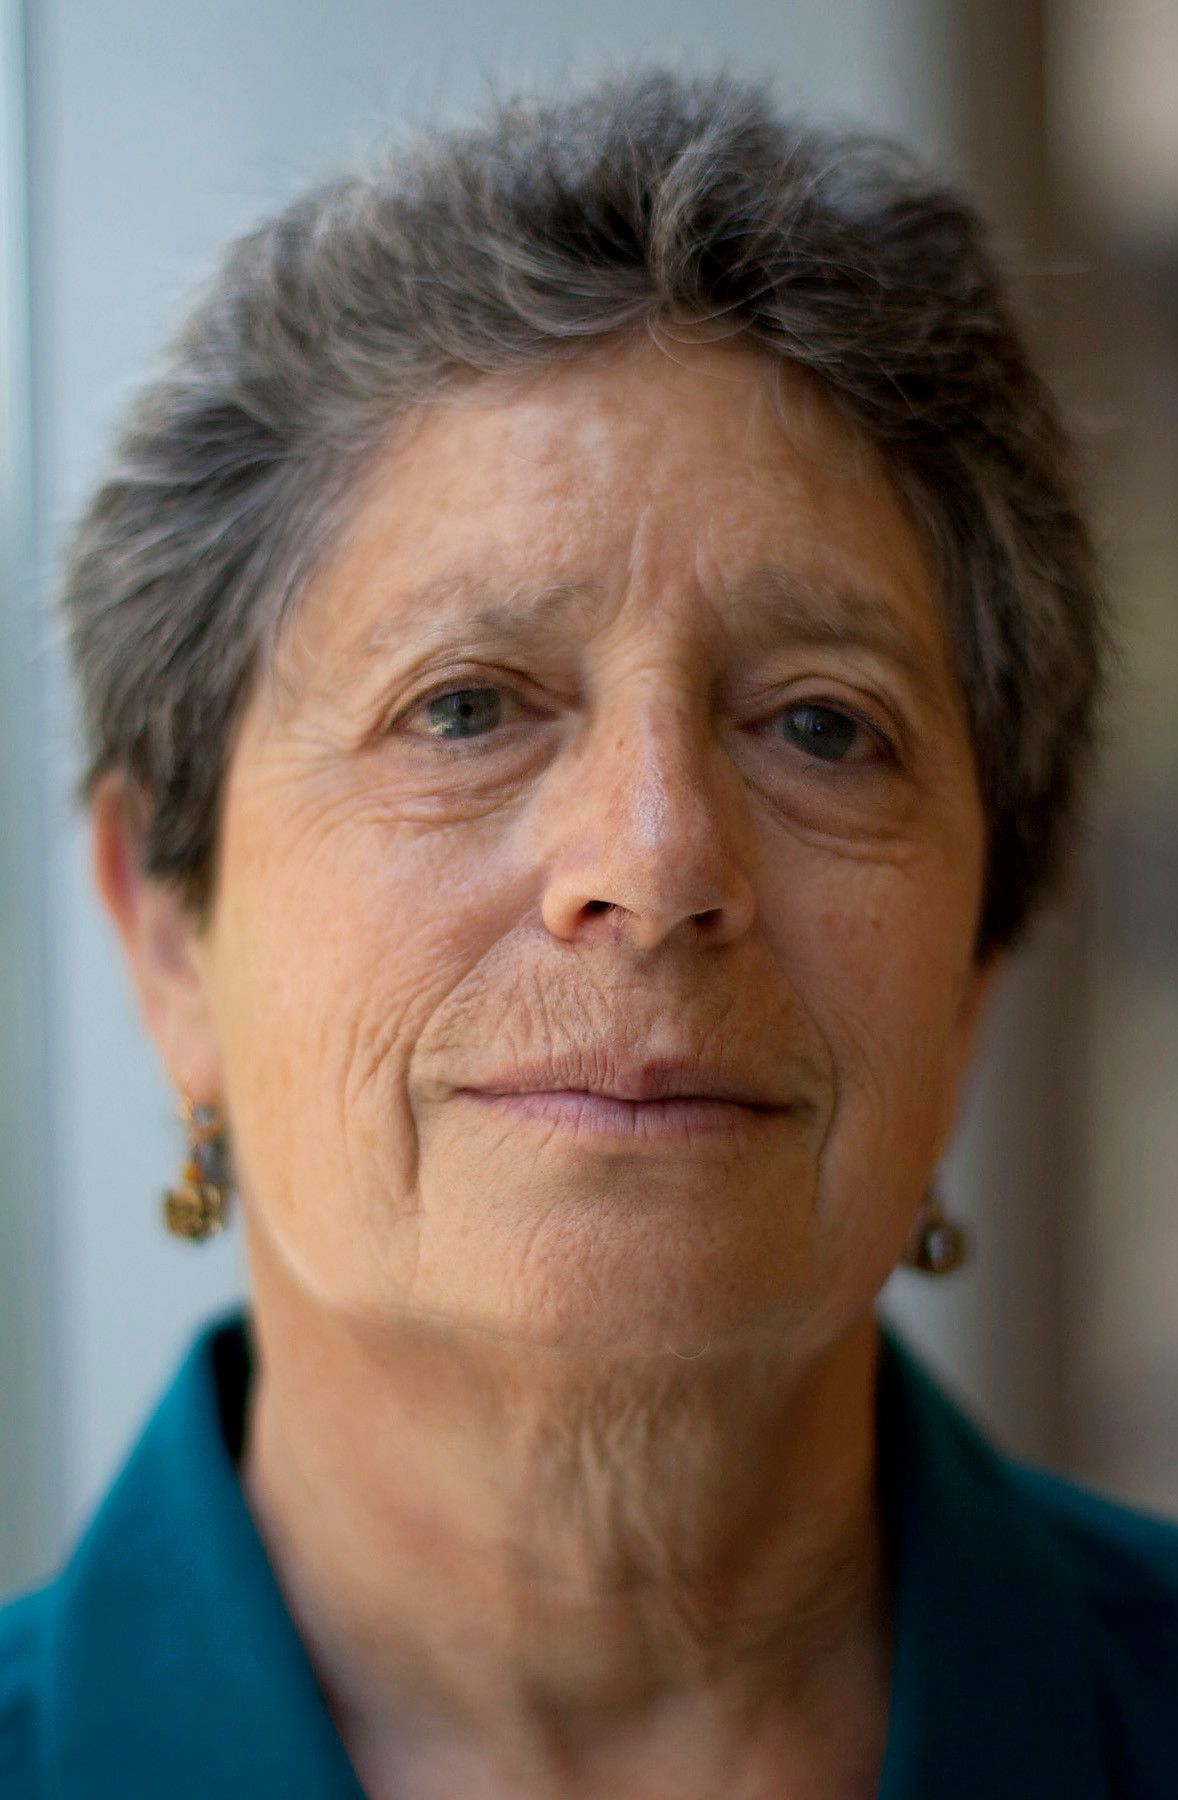 Anne Fausto-Sterling, the Nancy Duke Lewis Professor at Brown University, is retiring after 42 years of pioneering research in gender studies and biology.